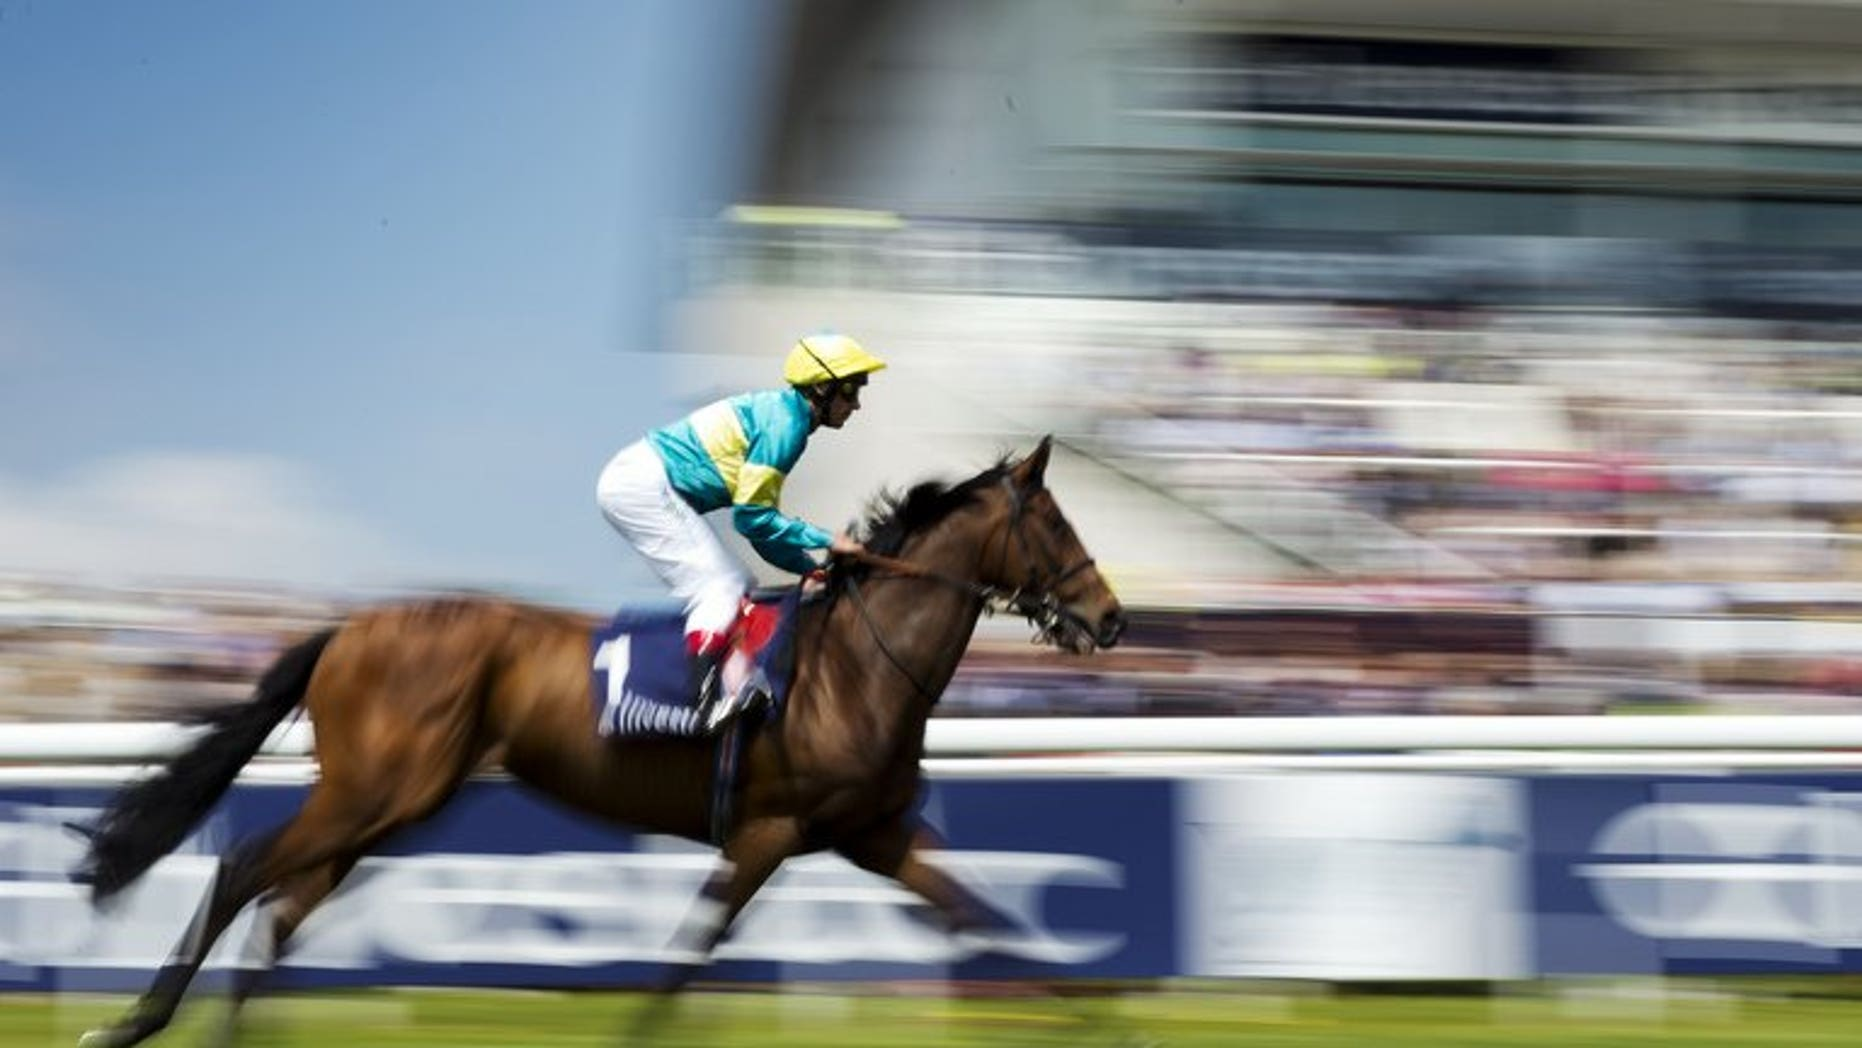 Frankie Dettori rides Fattsota at Epsom on May 31. Dettori on Monday signed a contract to ride for emerging Qatari owner Sheikh Joaan al-Thani, the Racing Post newspaper reported.